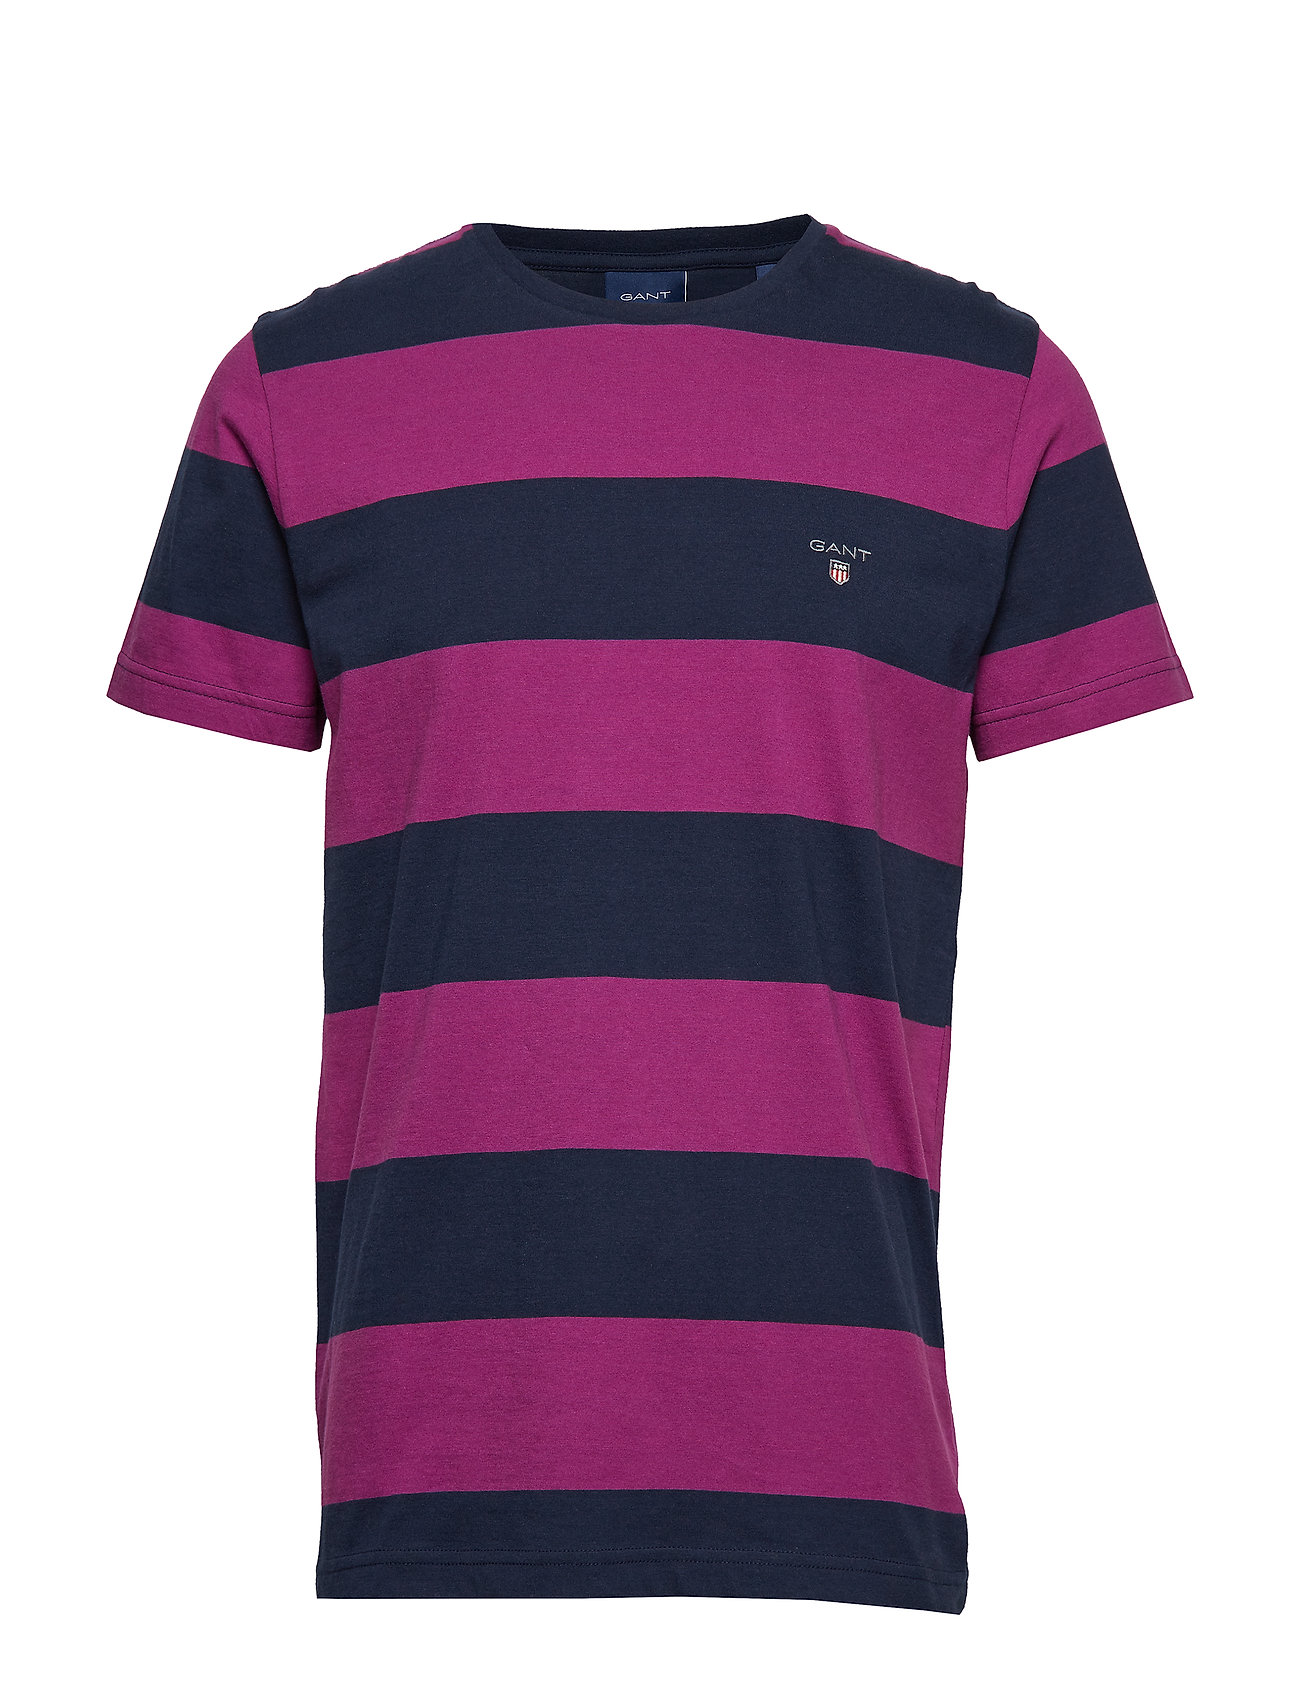 GANT THE ORIGINAL BARSTRIPE SS T-SHIRT